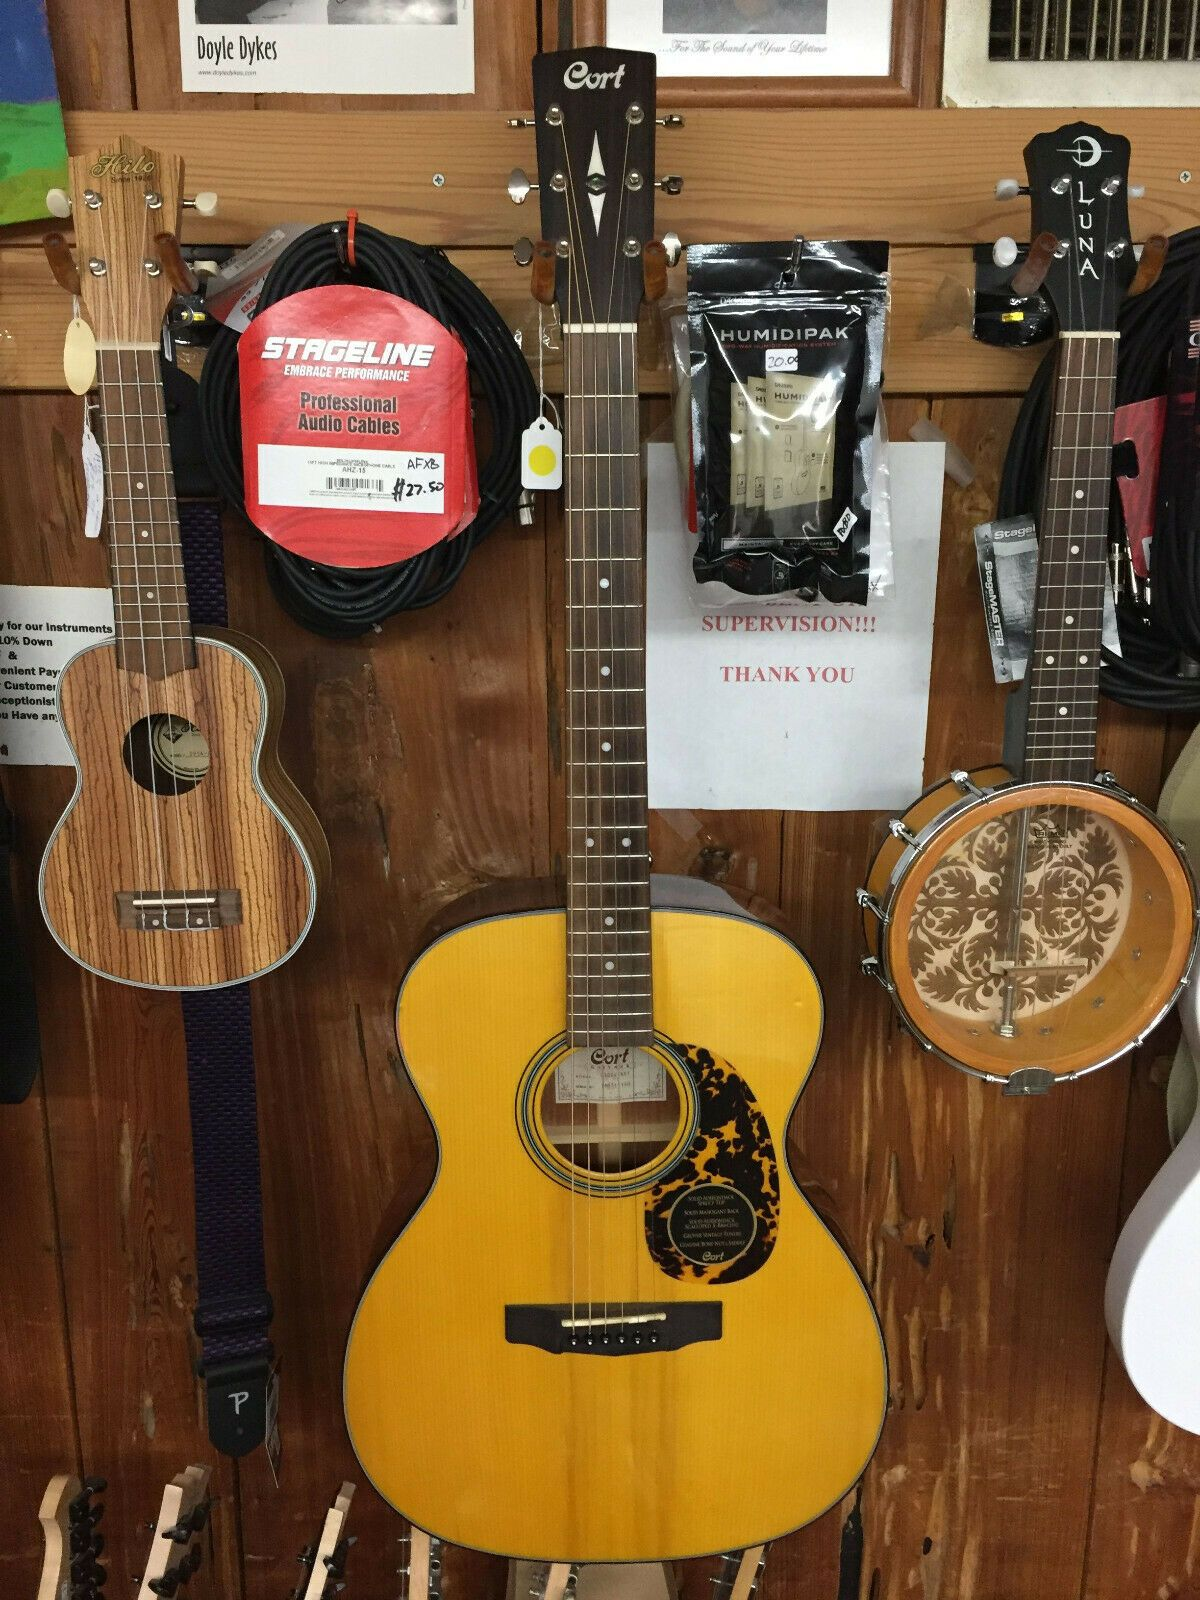 Pin By Kevin Rizqy On Guitar Acoustic Guitar Guitar Cort Guitars